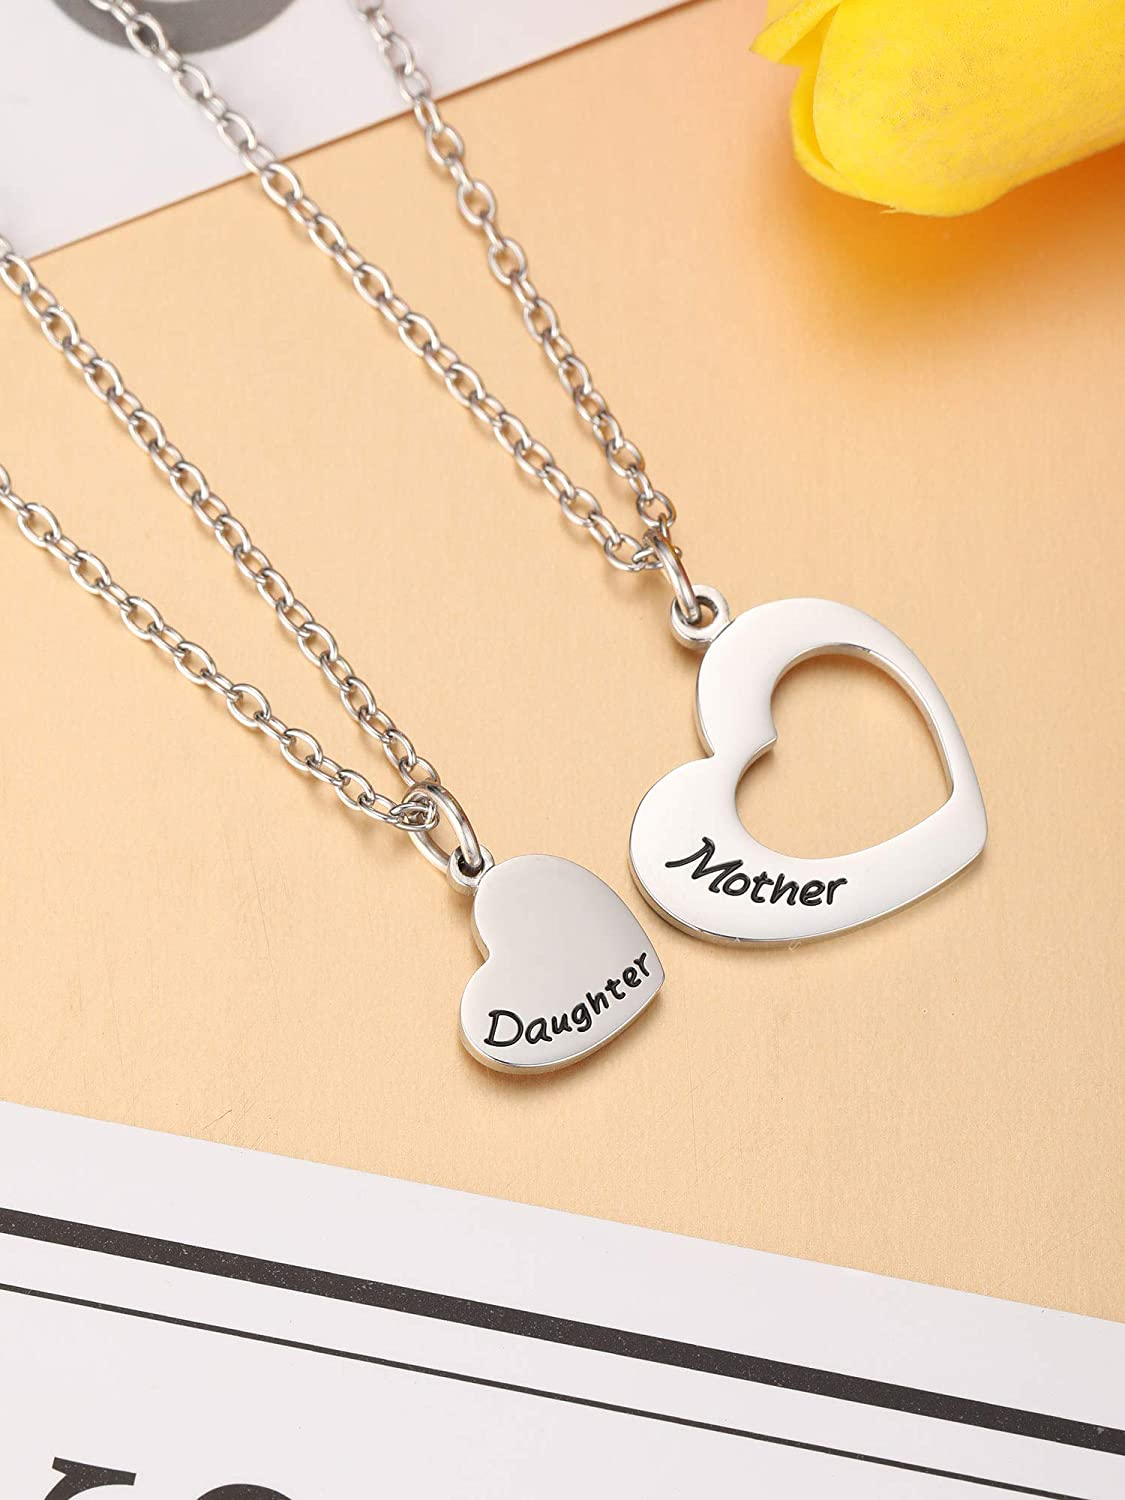 Christmas and New Year Gifts Thanksgiving Mother Daughter Necklaces Matching Heart Necklace Mothers Day Necklace Pendant for Birthday Jewelry Accessories Daily Wearing Halloween